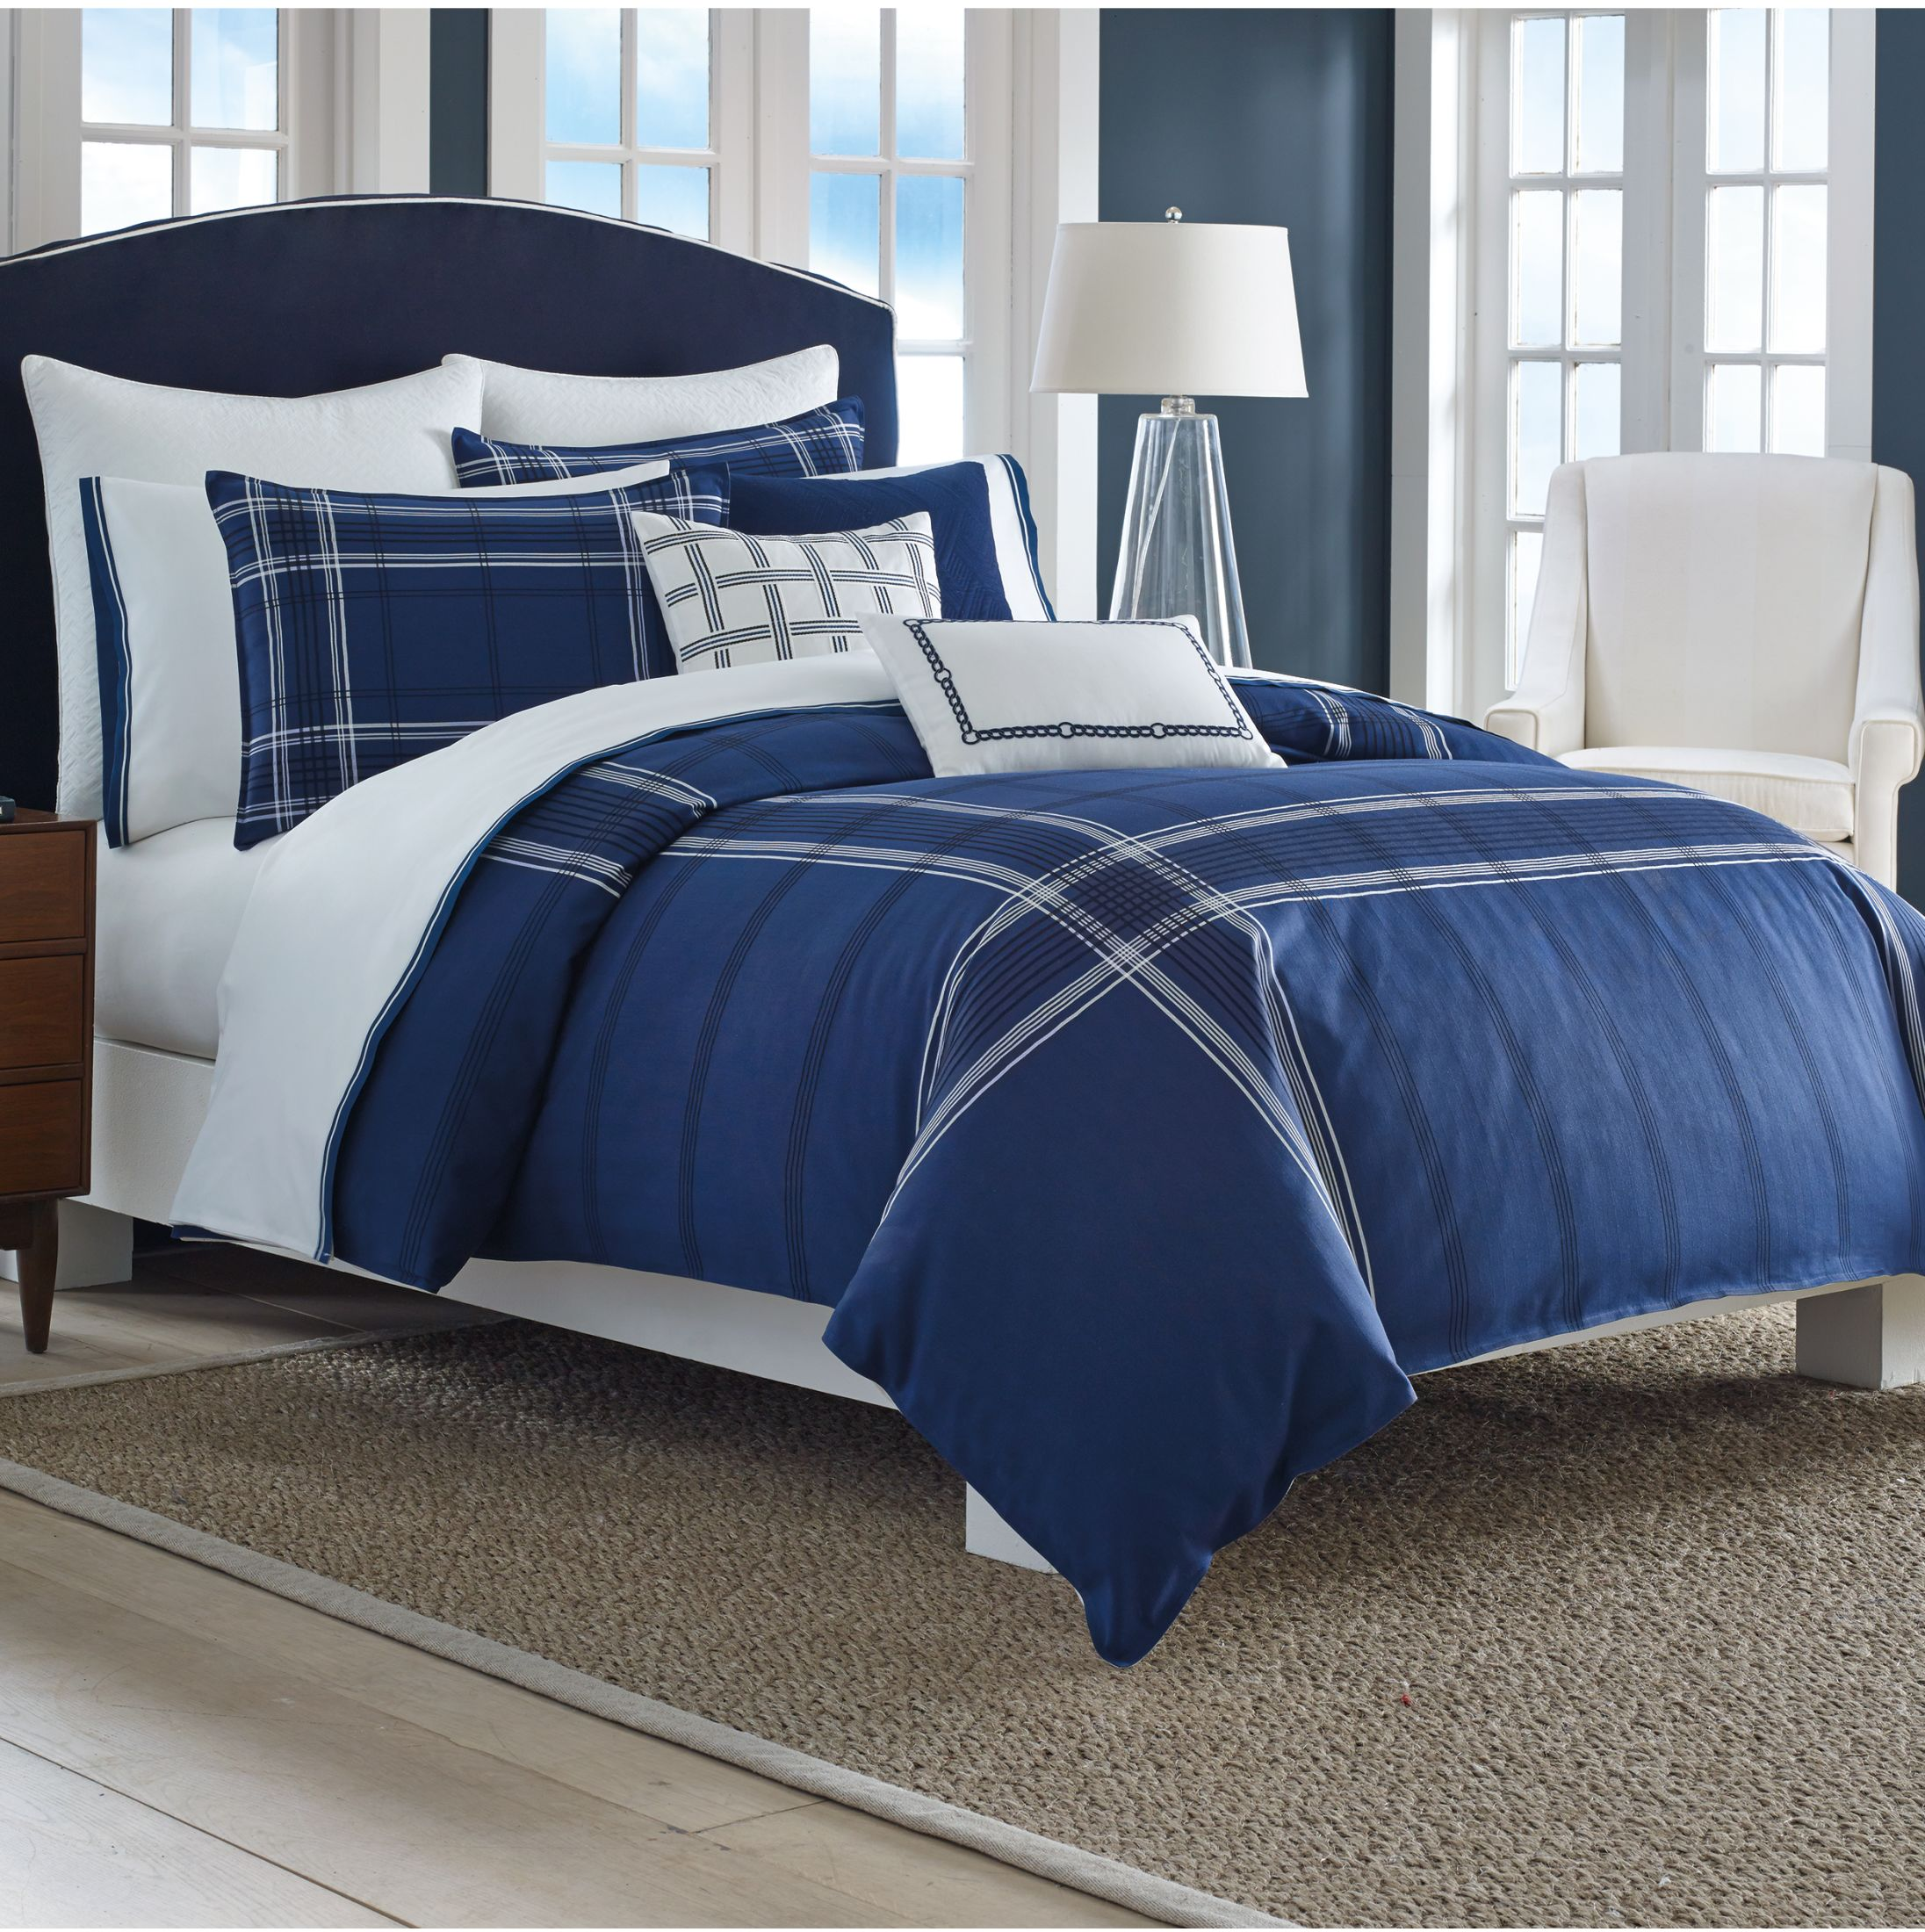 Blue bedspreads and comforters - Full Size Comforter Twin Comforter Navy Blue Comforter